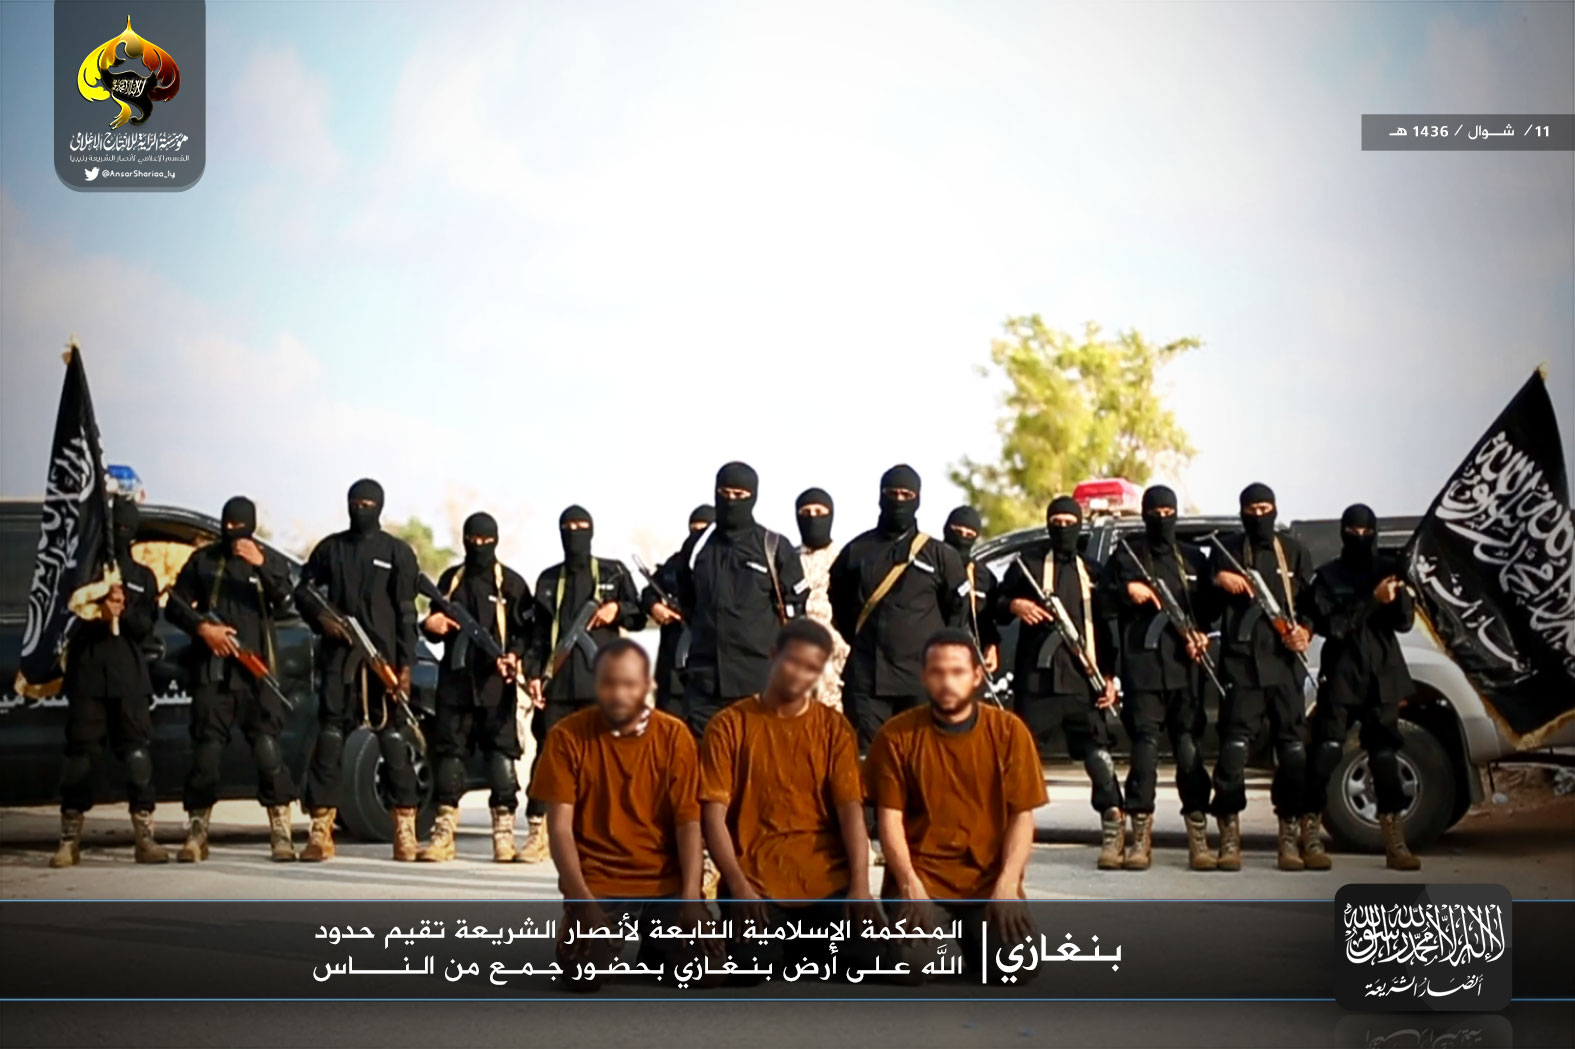 Ansar Sharia's Islamic Police in Benghazi